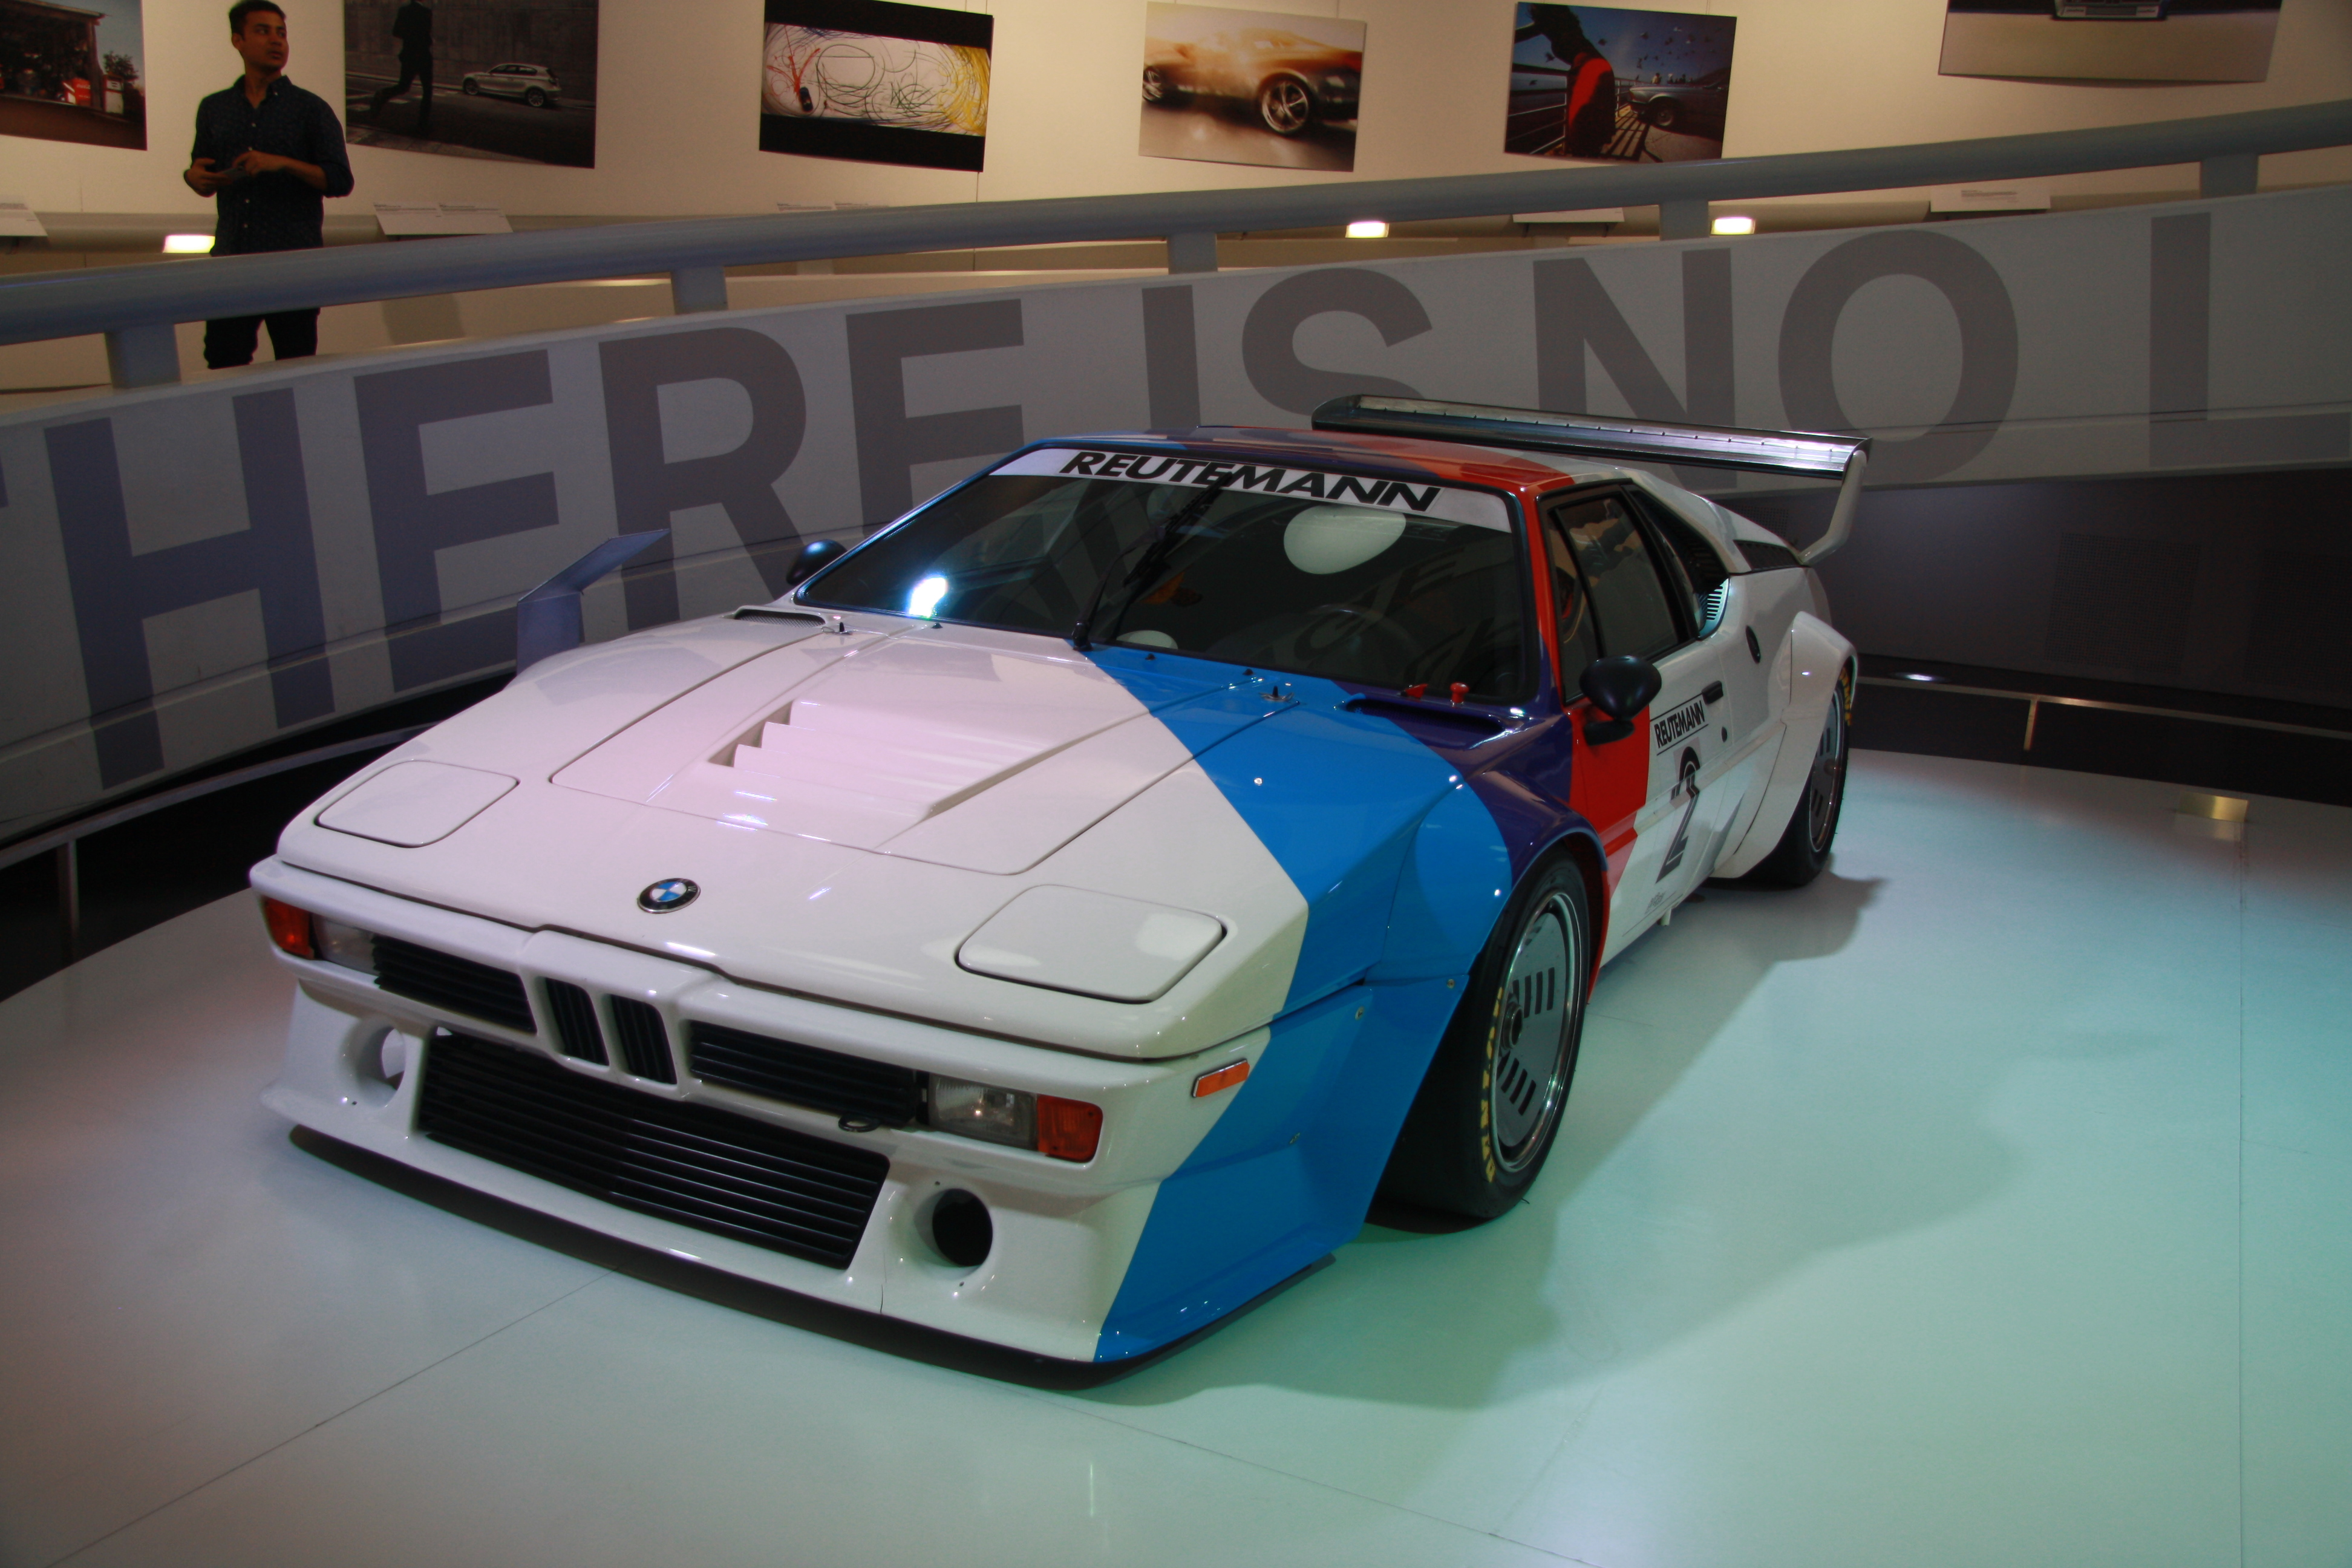 file bmw m1 racing car in bmw museum in munich bayern jpg wikimedia commons. Black Bedroom Furniture Sets. Home Design Ideas